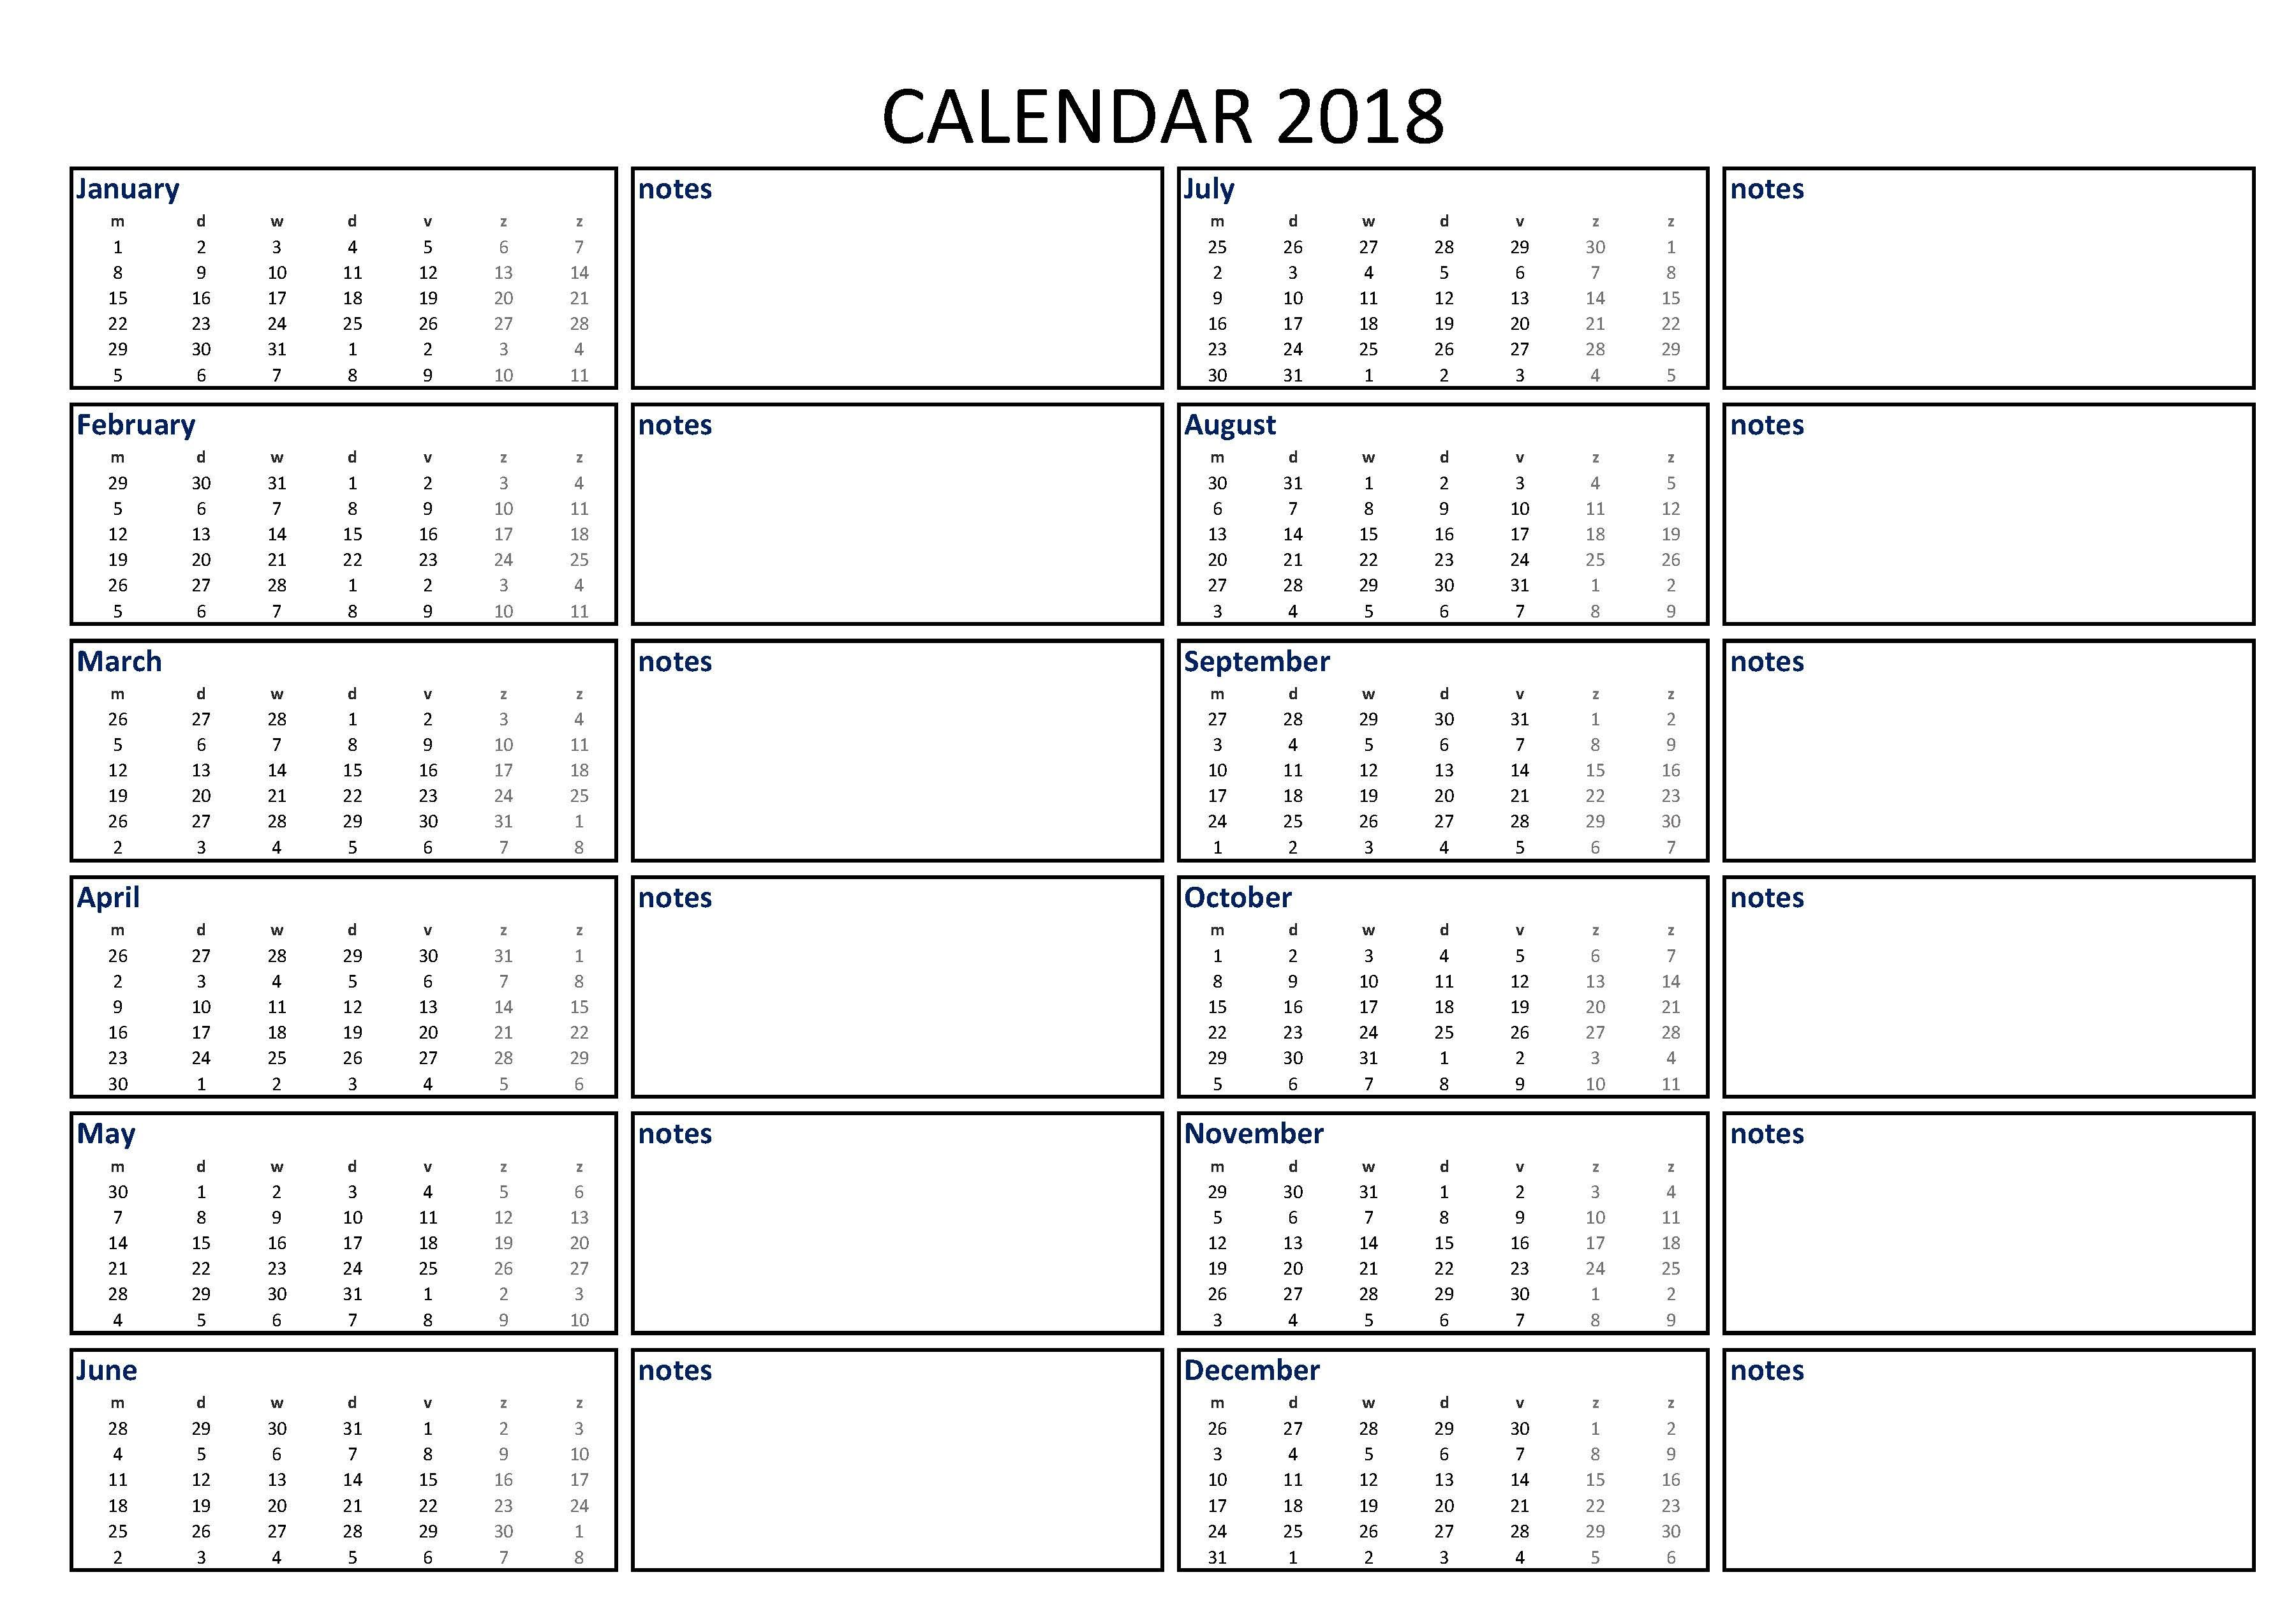 usable calendar template - 2018 calendar excel a3 with notes download our free